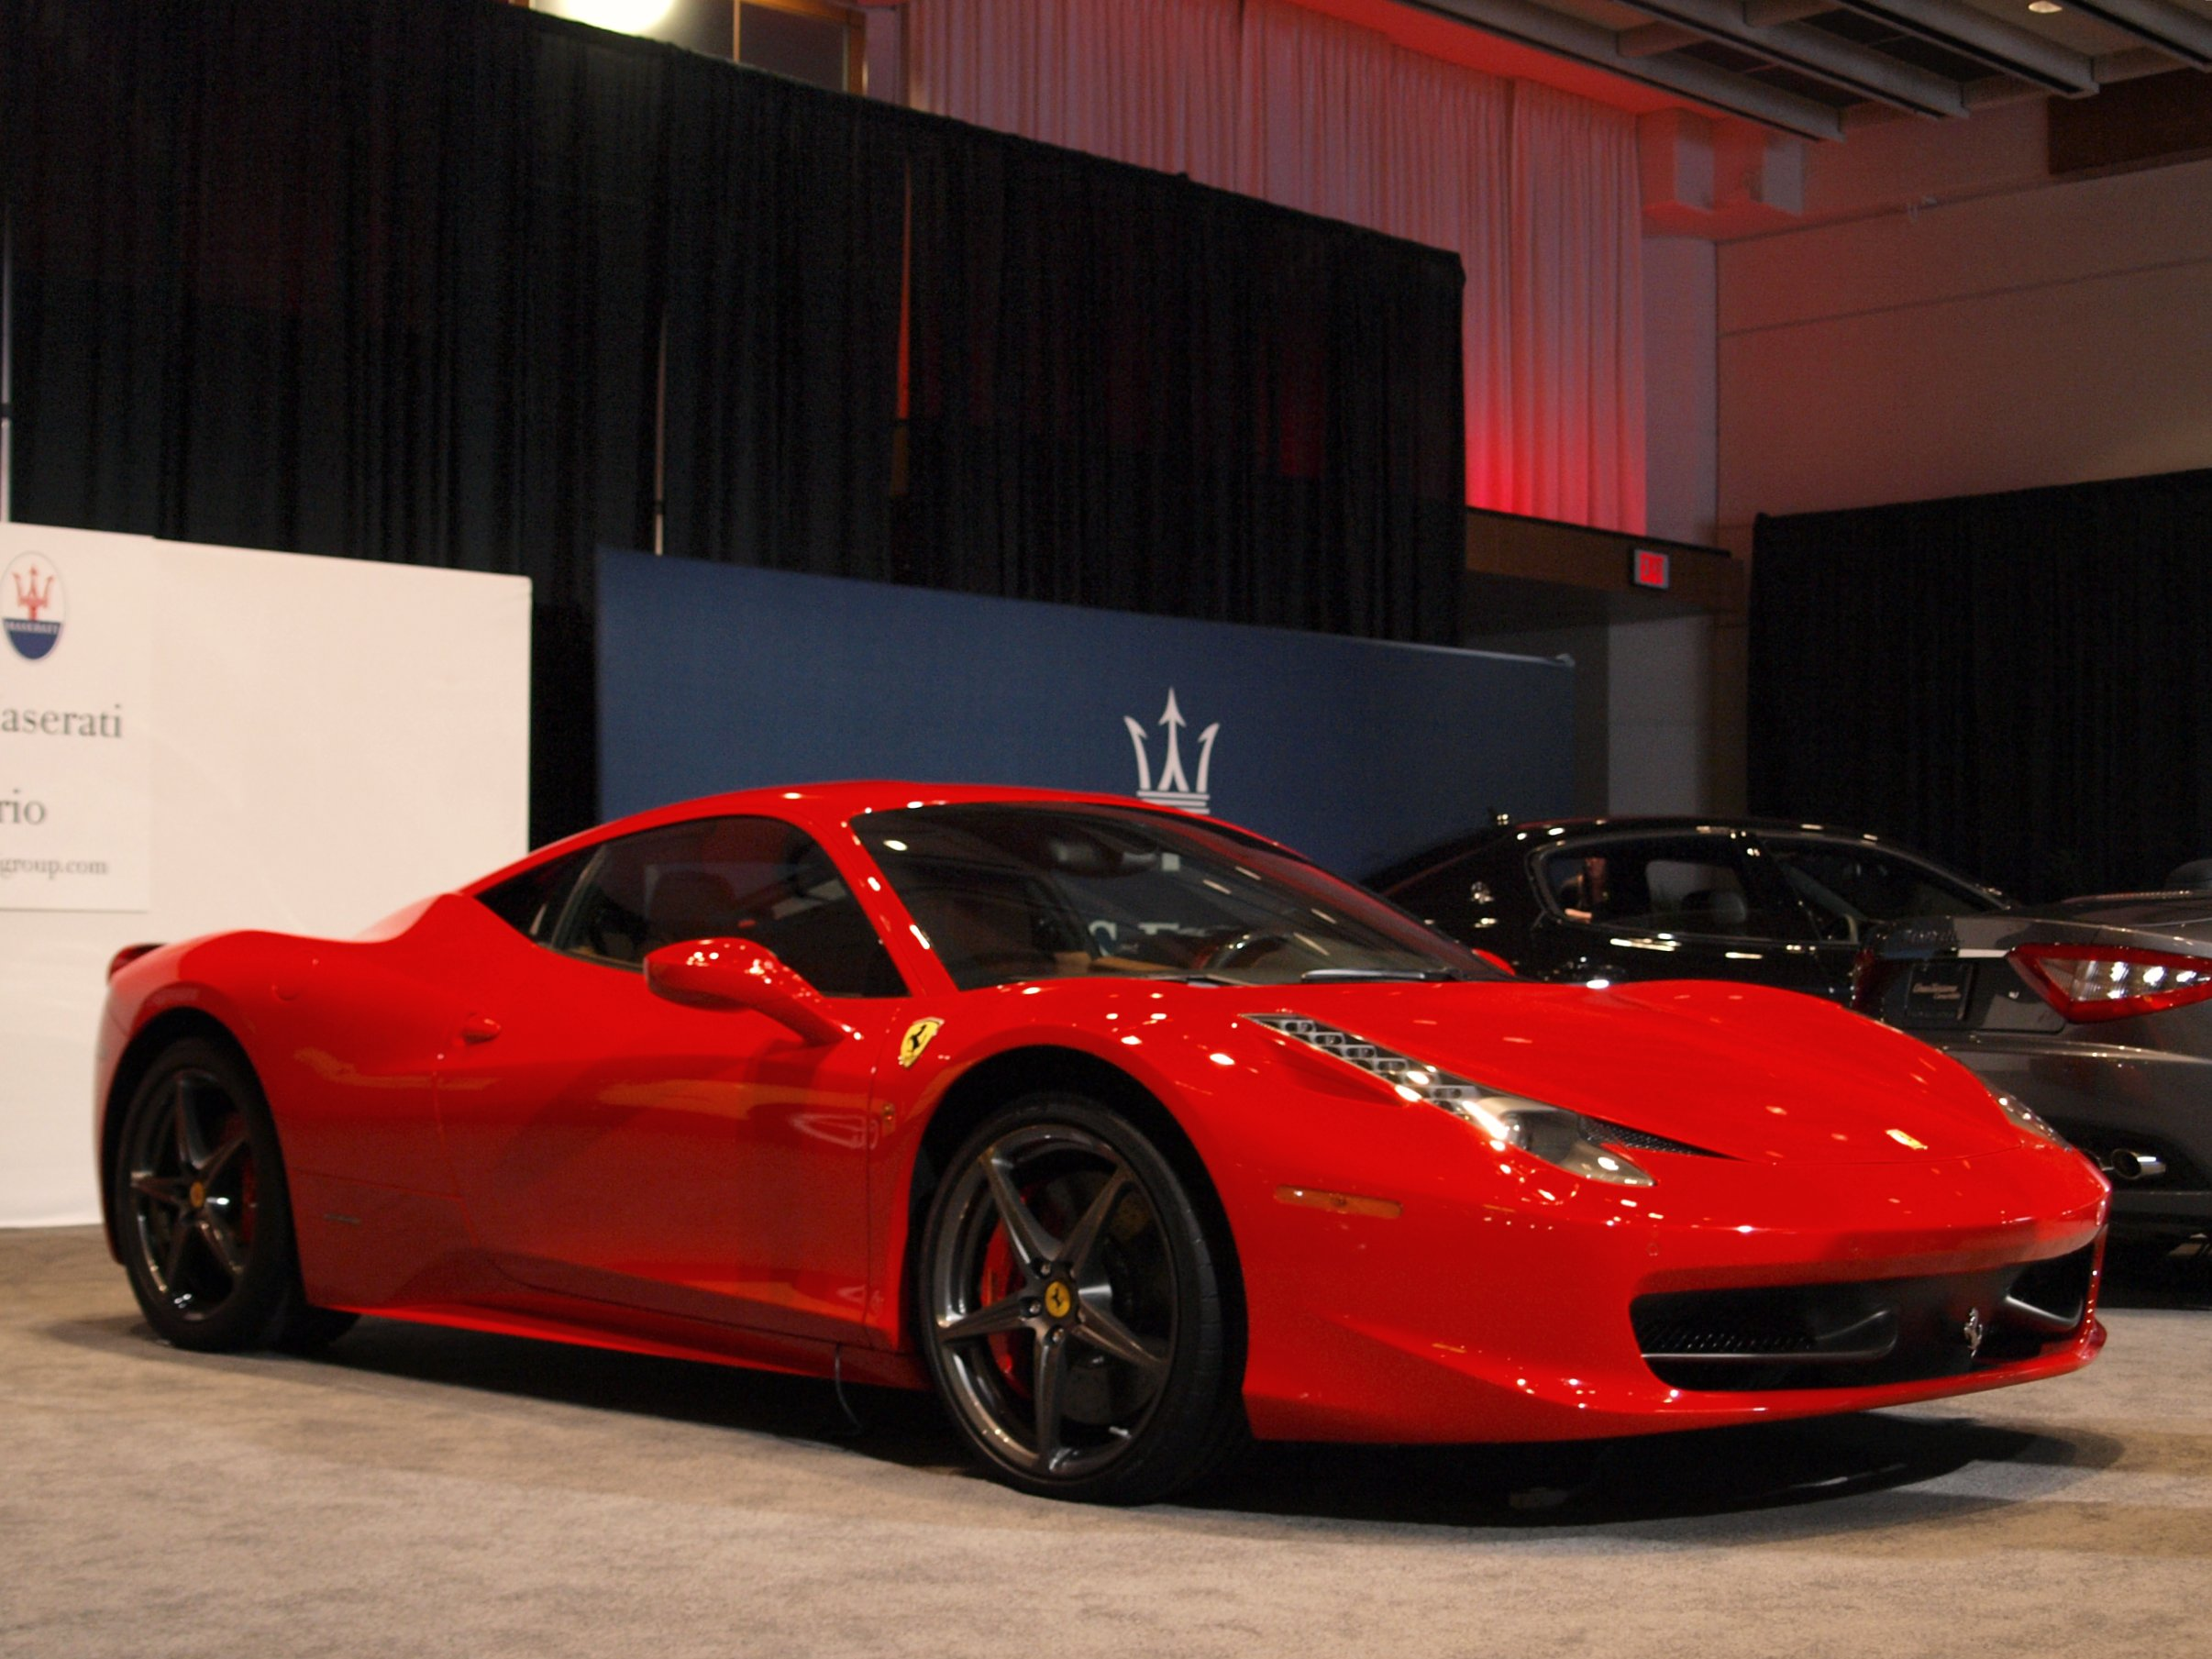 file:2011 ferrari 458 italia (5483297012) - wikimedia commons